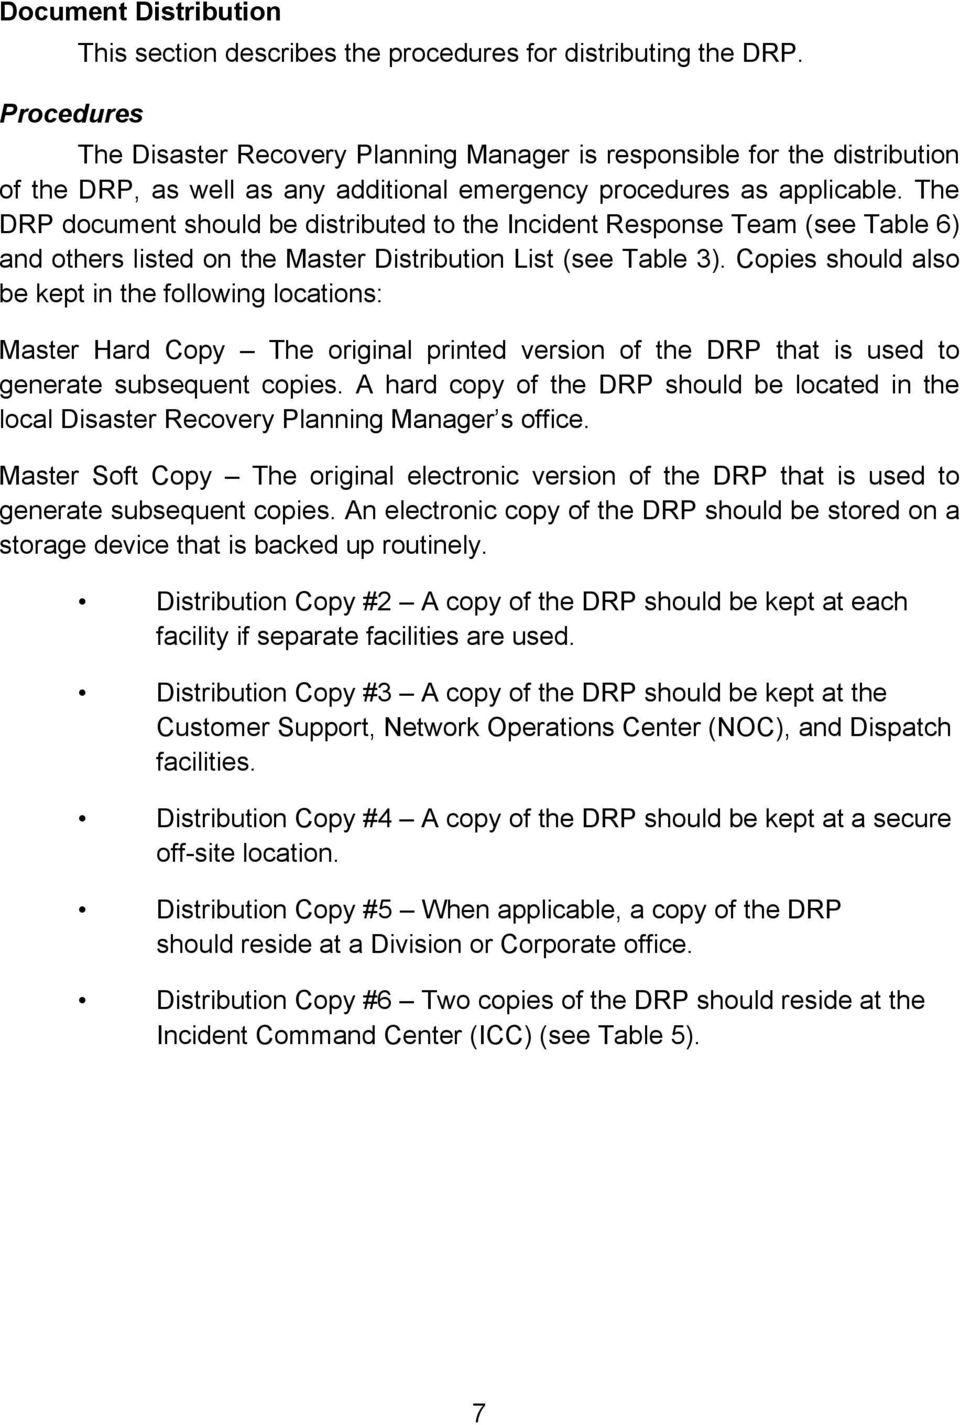 The DRP document should be distributed to the Incident Response Team (see Table 6) and others listed on the Master Distribution List (see Table 3).